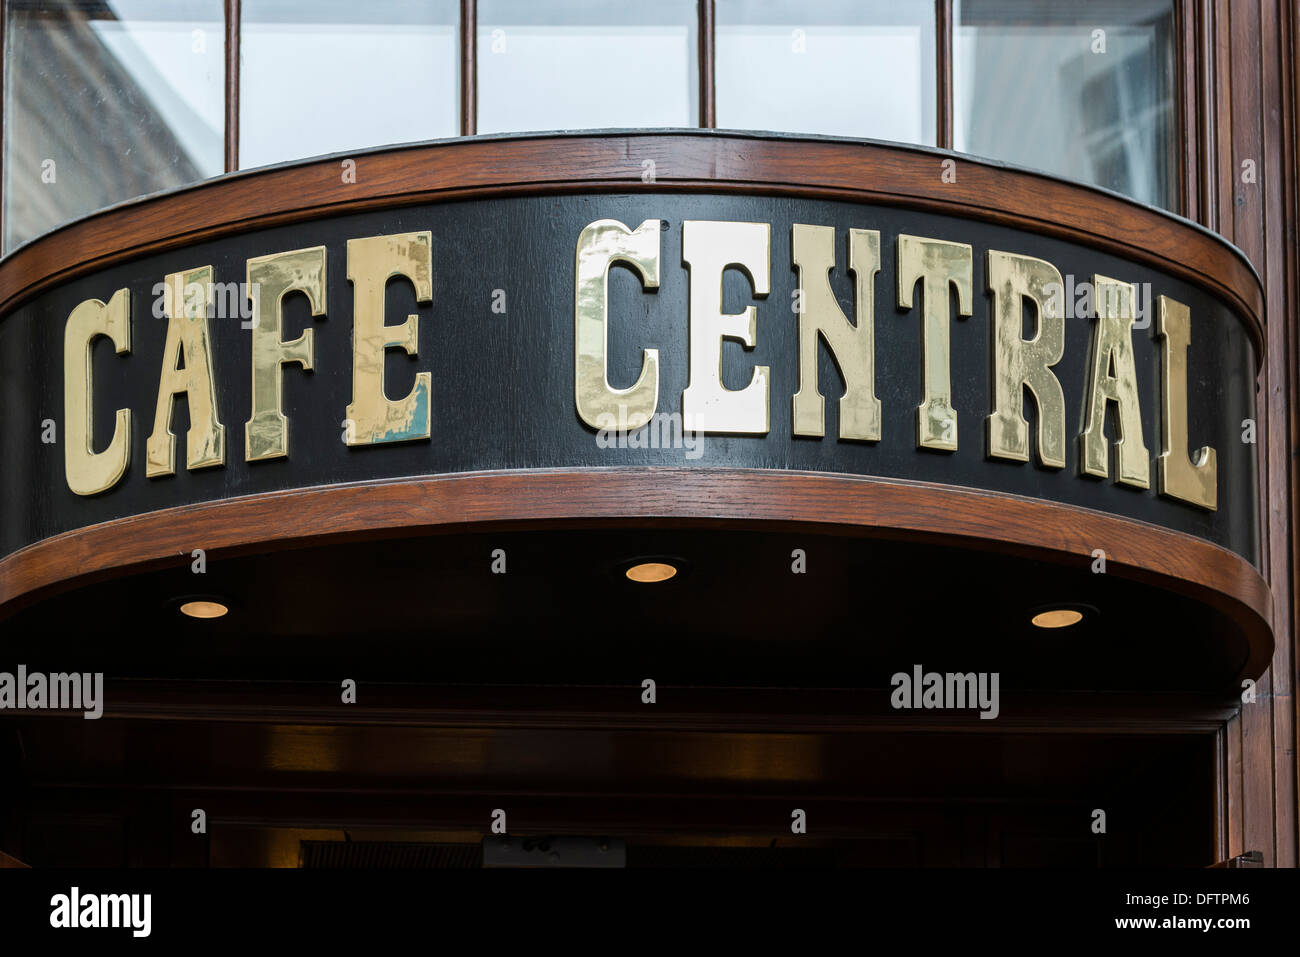 Cafe Central, entrance, Innere Stadt, Vienna, Vienna State, Austria - Stock Image